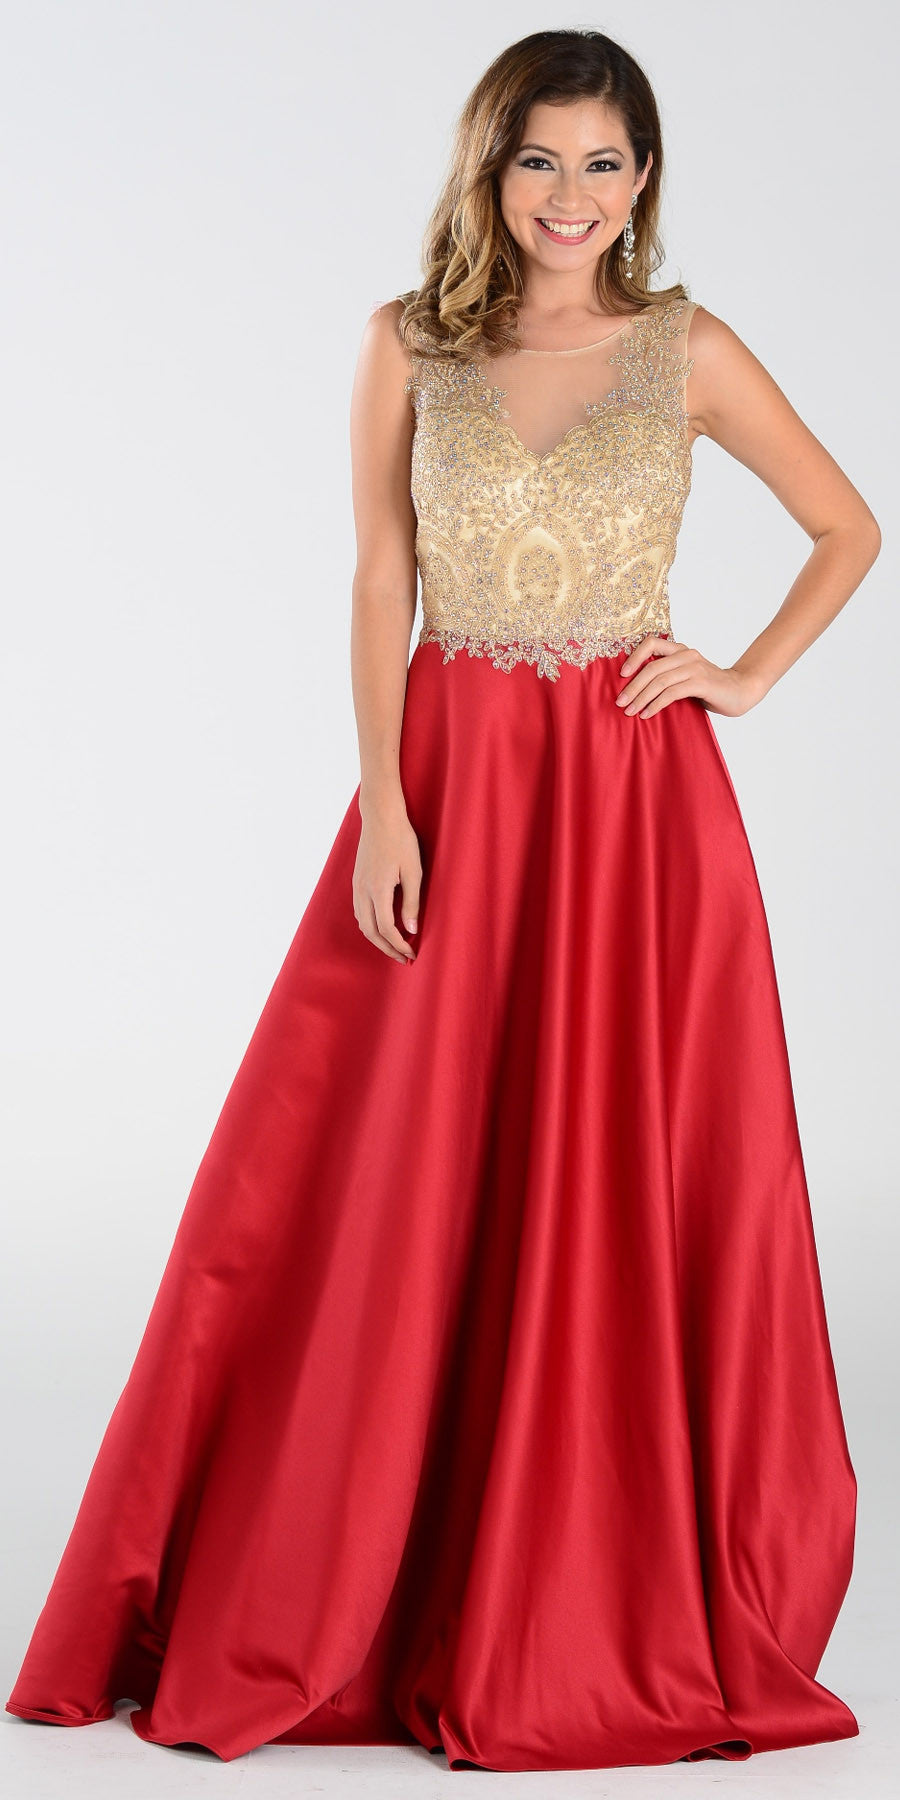 Poly USA 7494 Long Satin A Line Prom Gown Burgundy Lace Applique